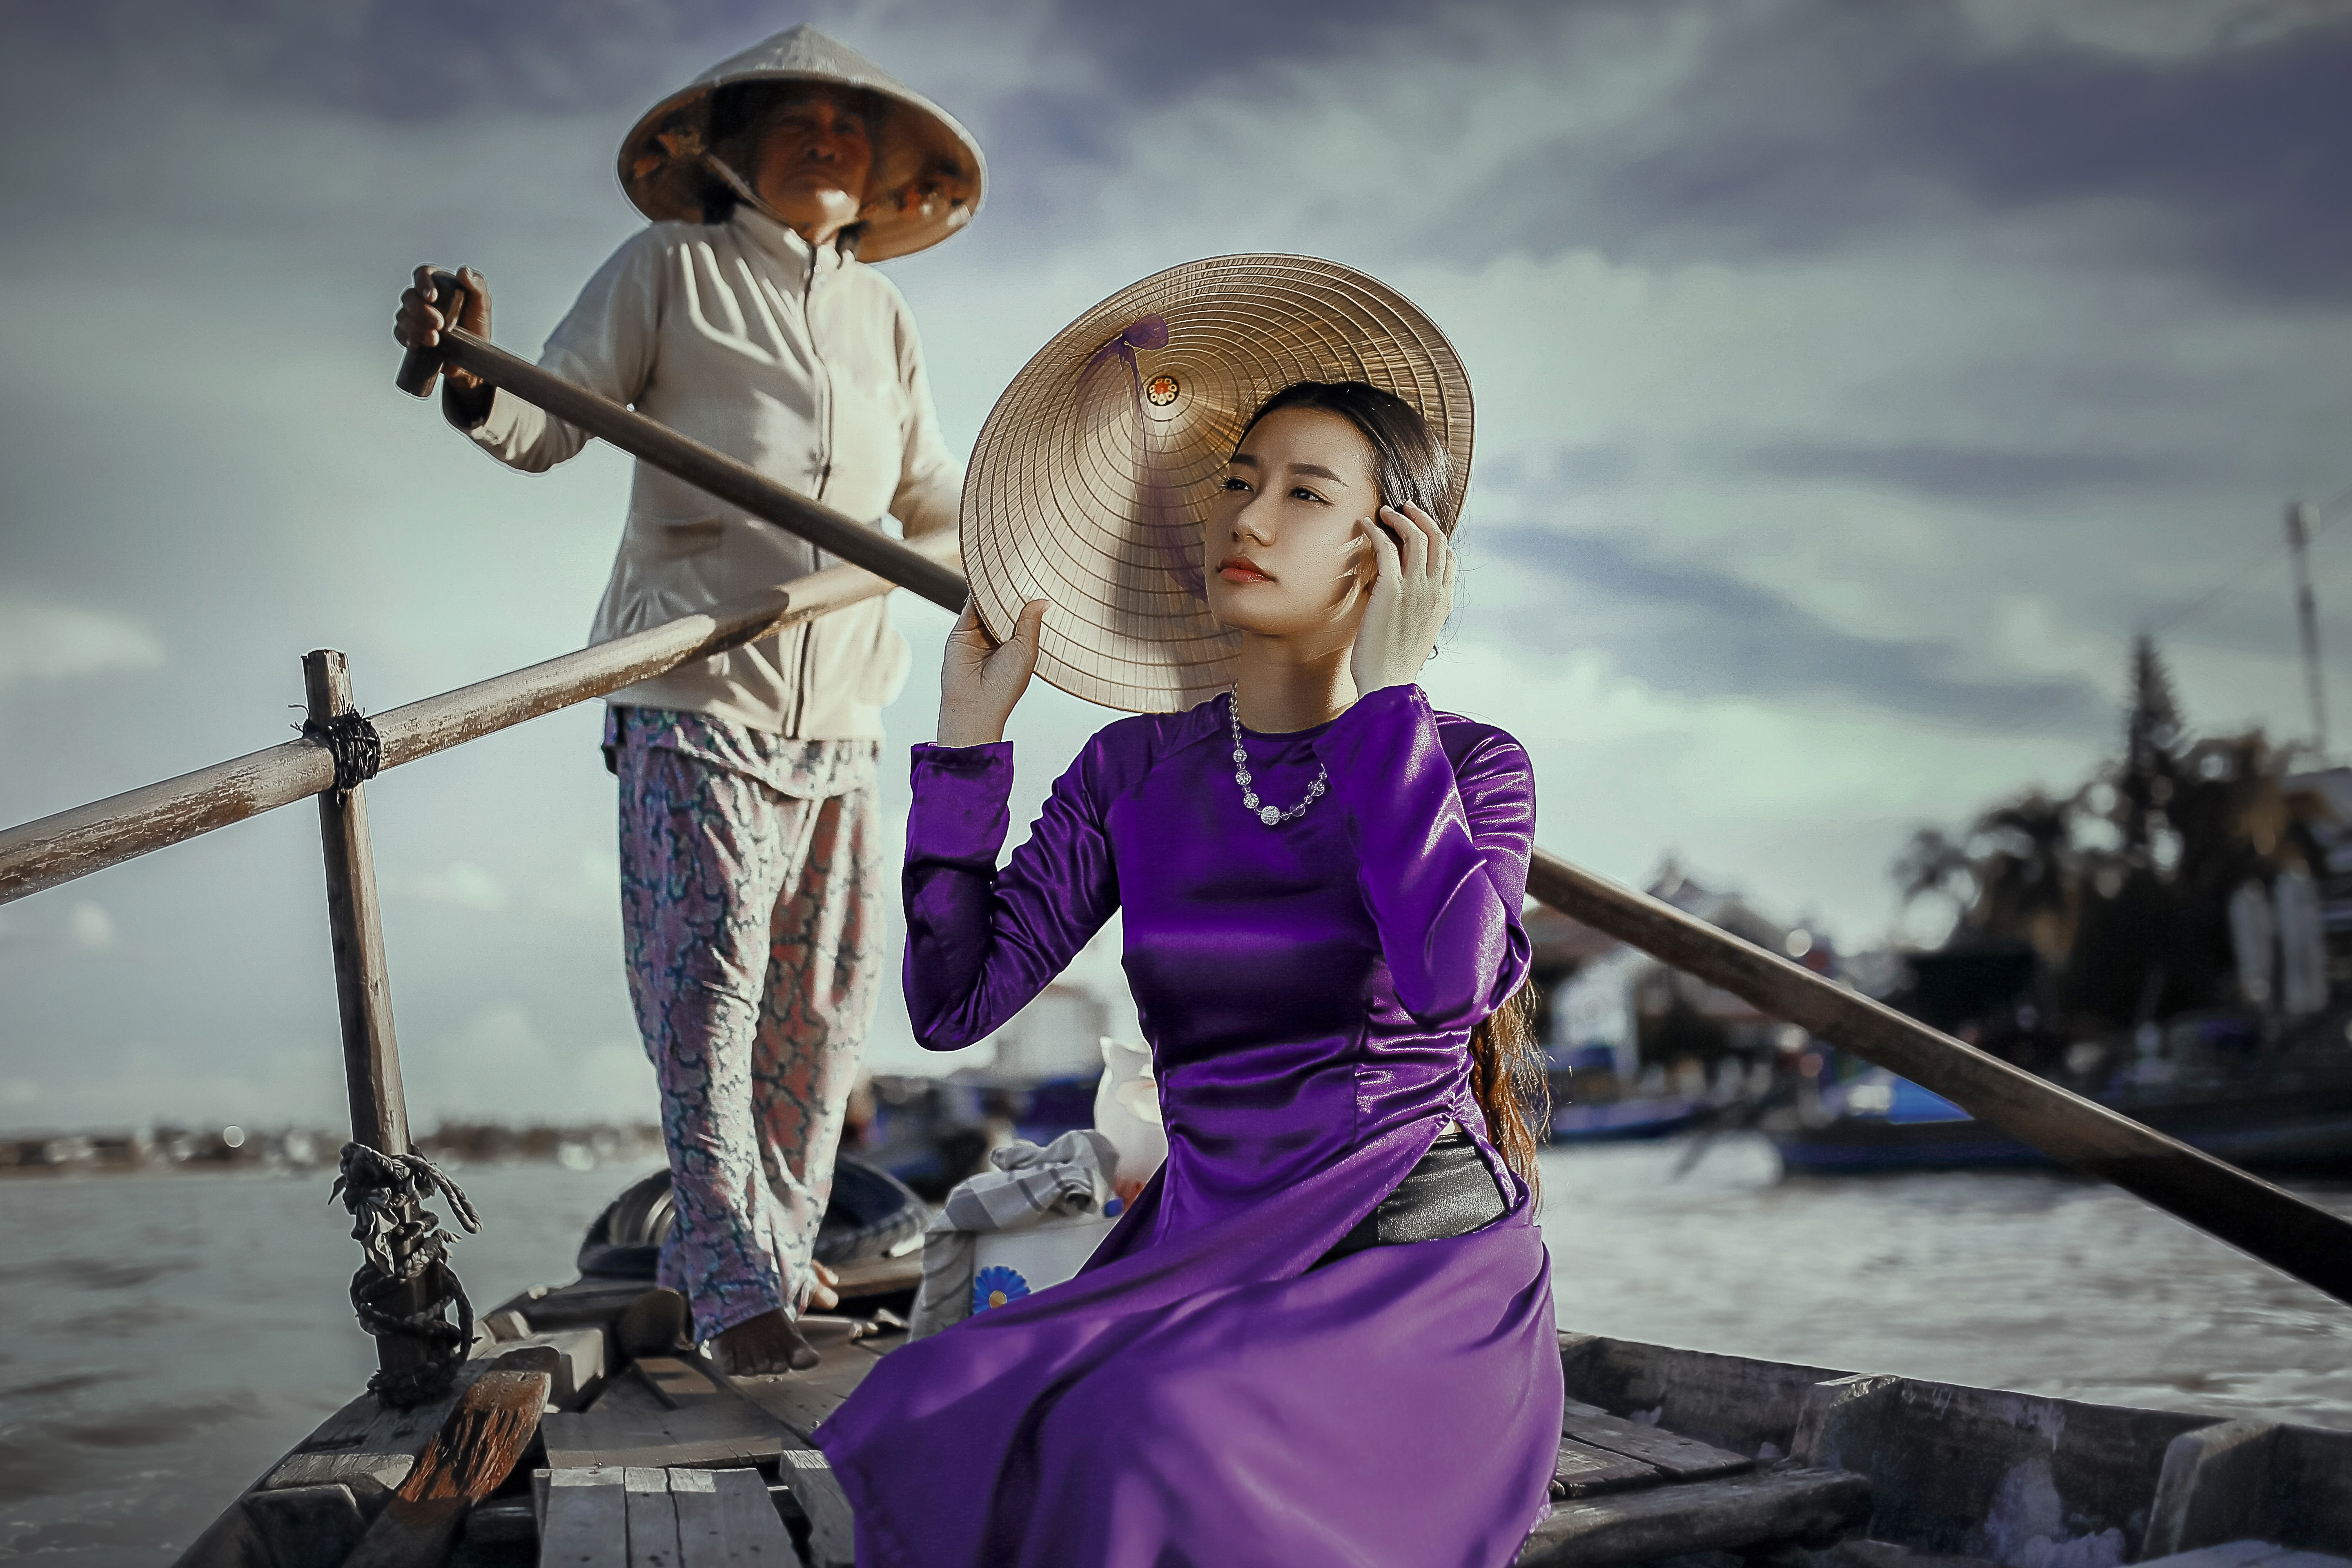 A young Asian woman in a purple dress and a rice hat on a boat with an elderly woman at the back